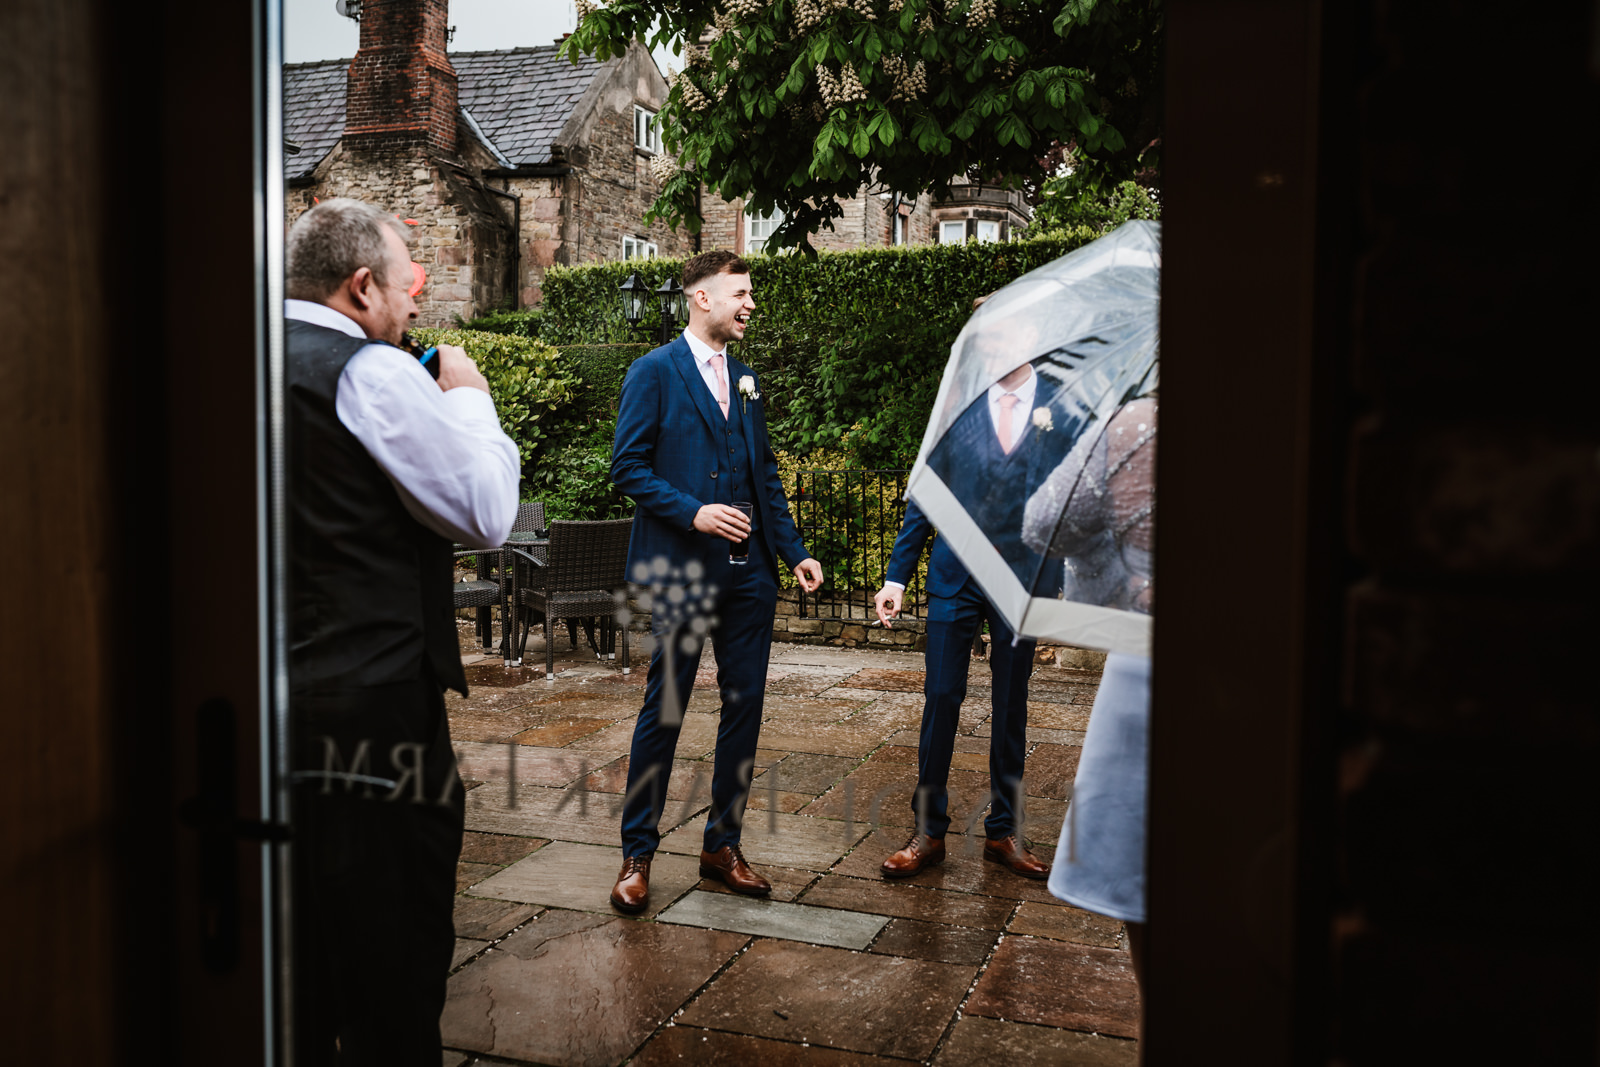 Groom with his guests in the rain